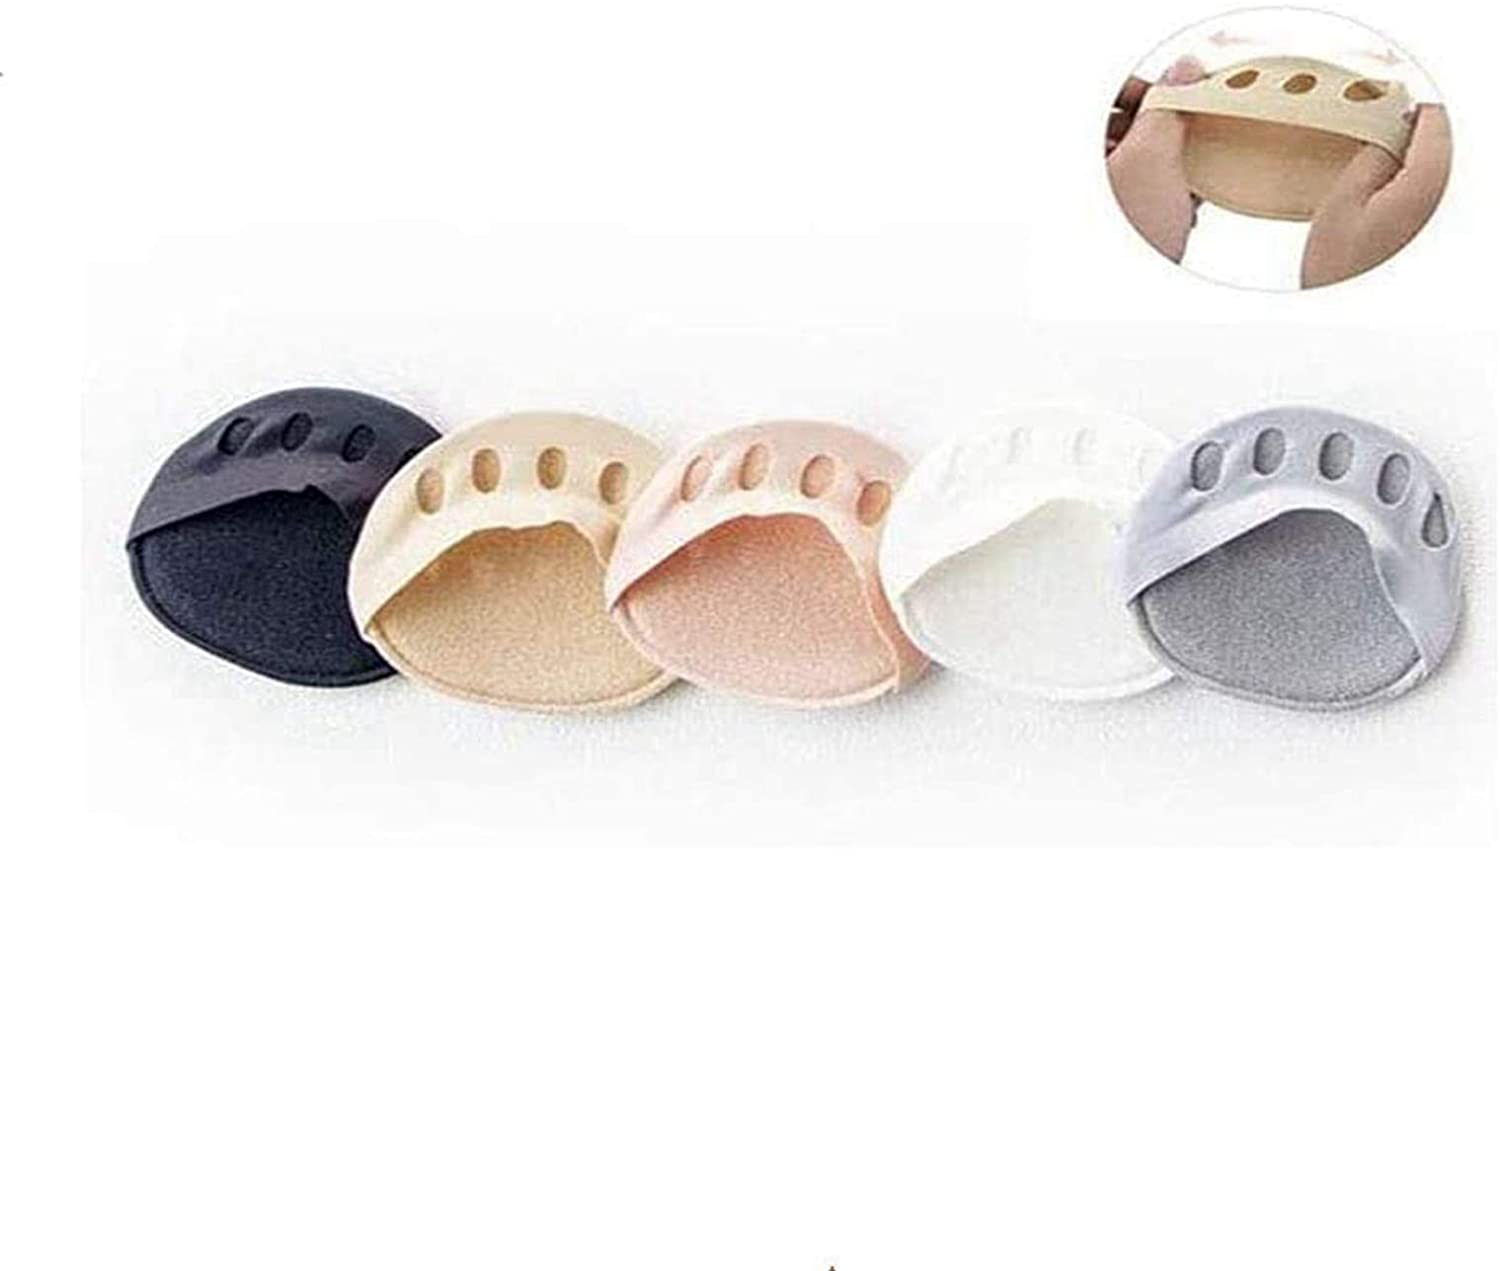 5 Pairs Honeycomb Fabric Forefoot Pads,Soft Meta Bone Pad Non-Slip Invisible Half Toe Pad for Unisex,5 Colors